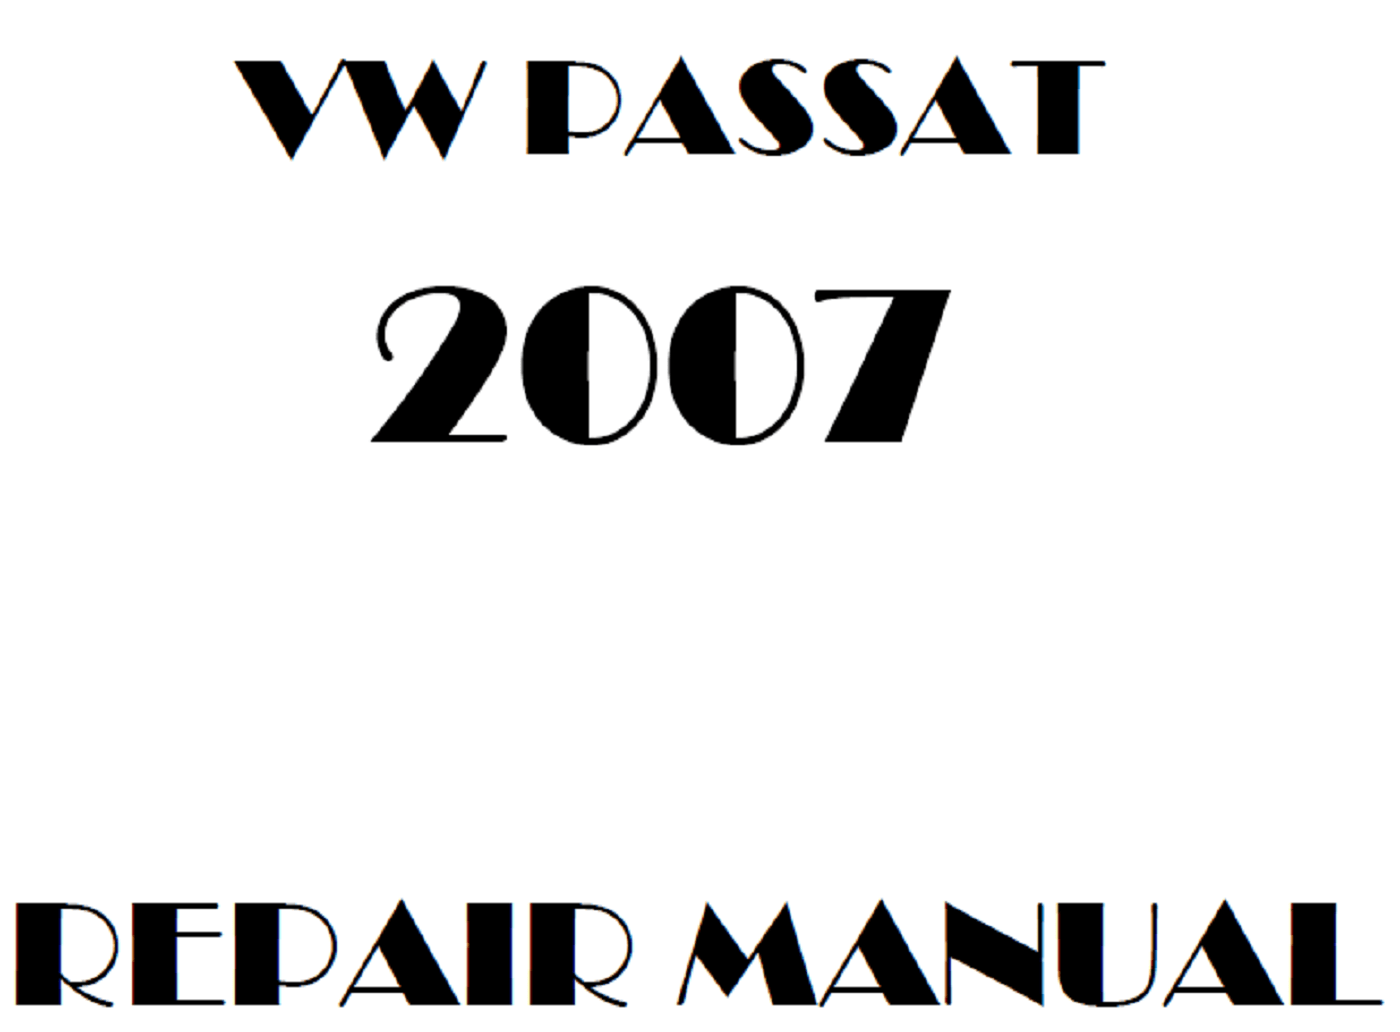 2007 Volkswagen Passat repair manual